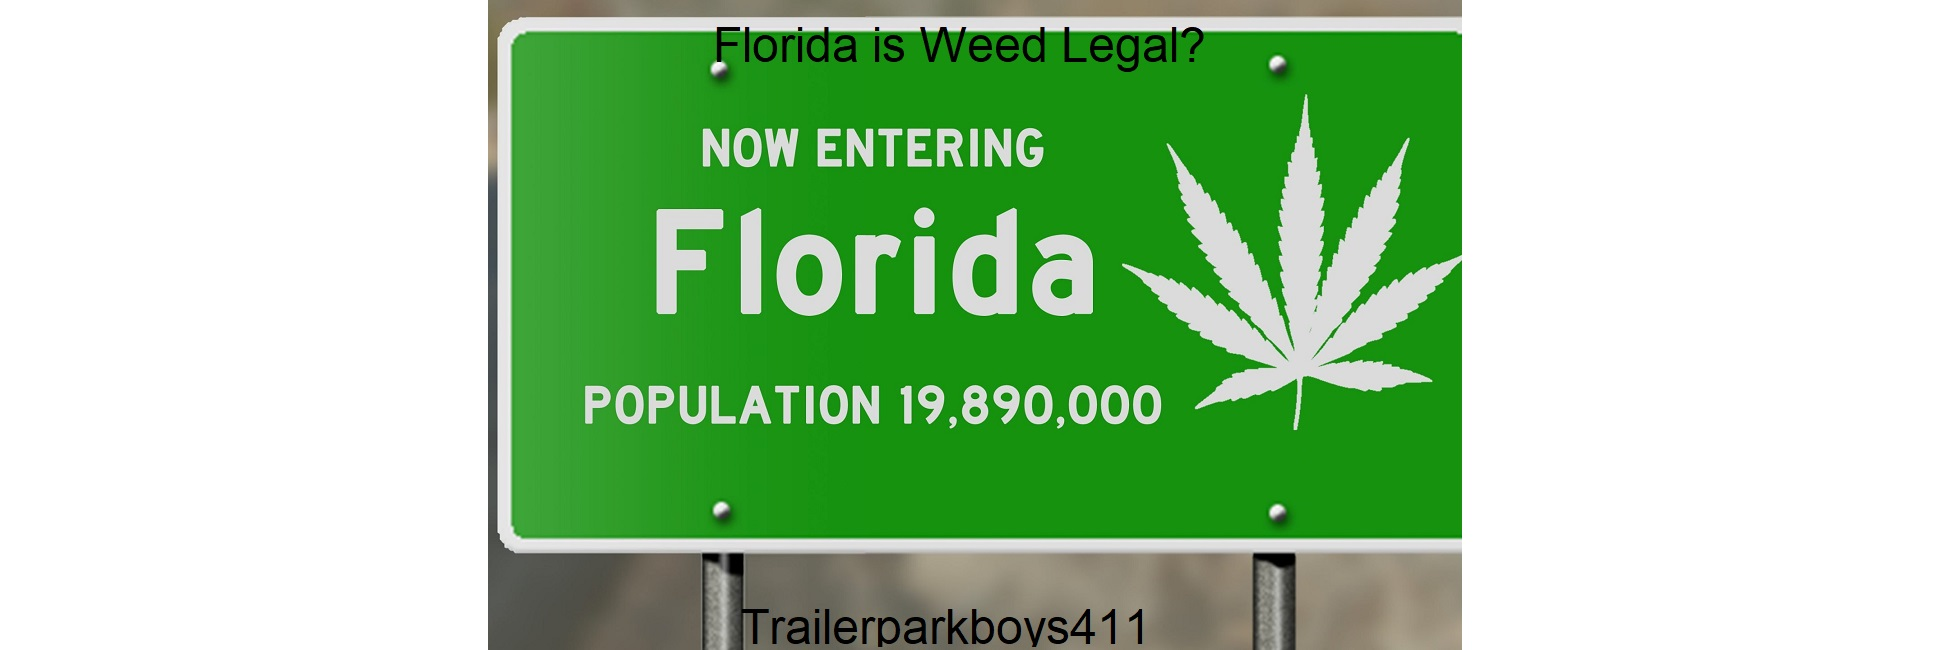 Florida is Weed Legal